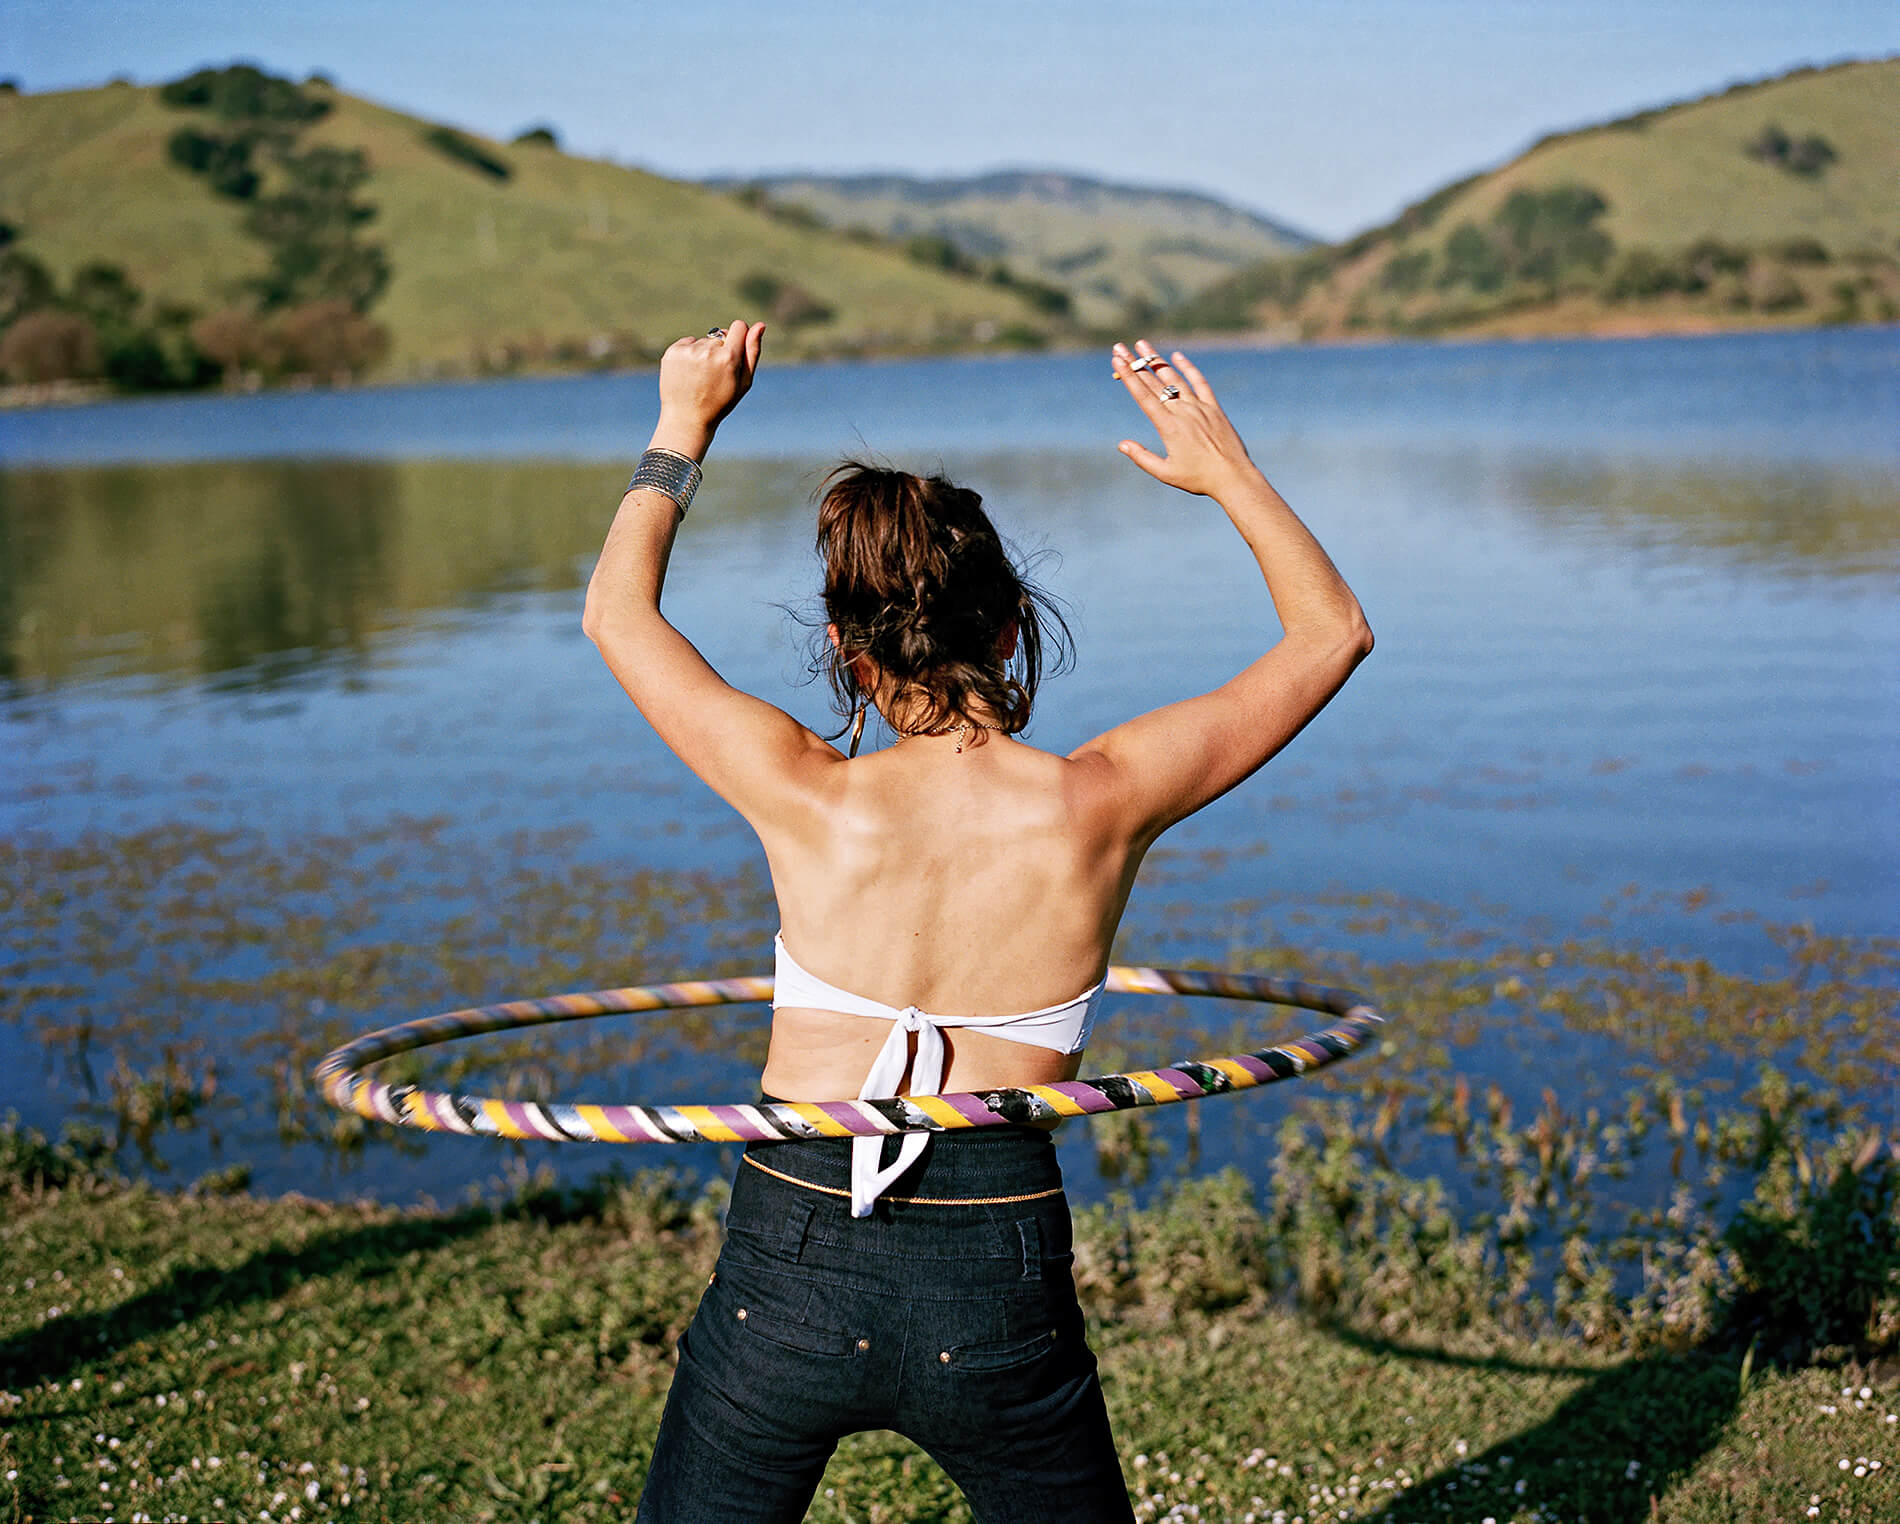 Woman with hula hoop and cigarette at lake